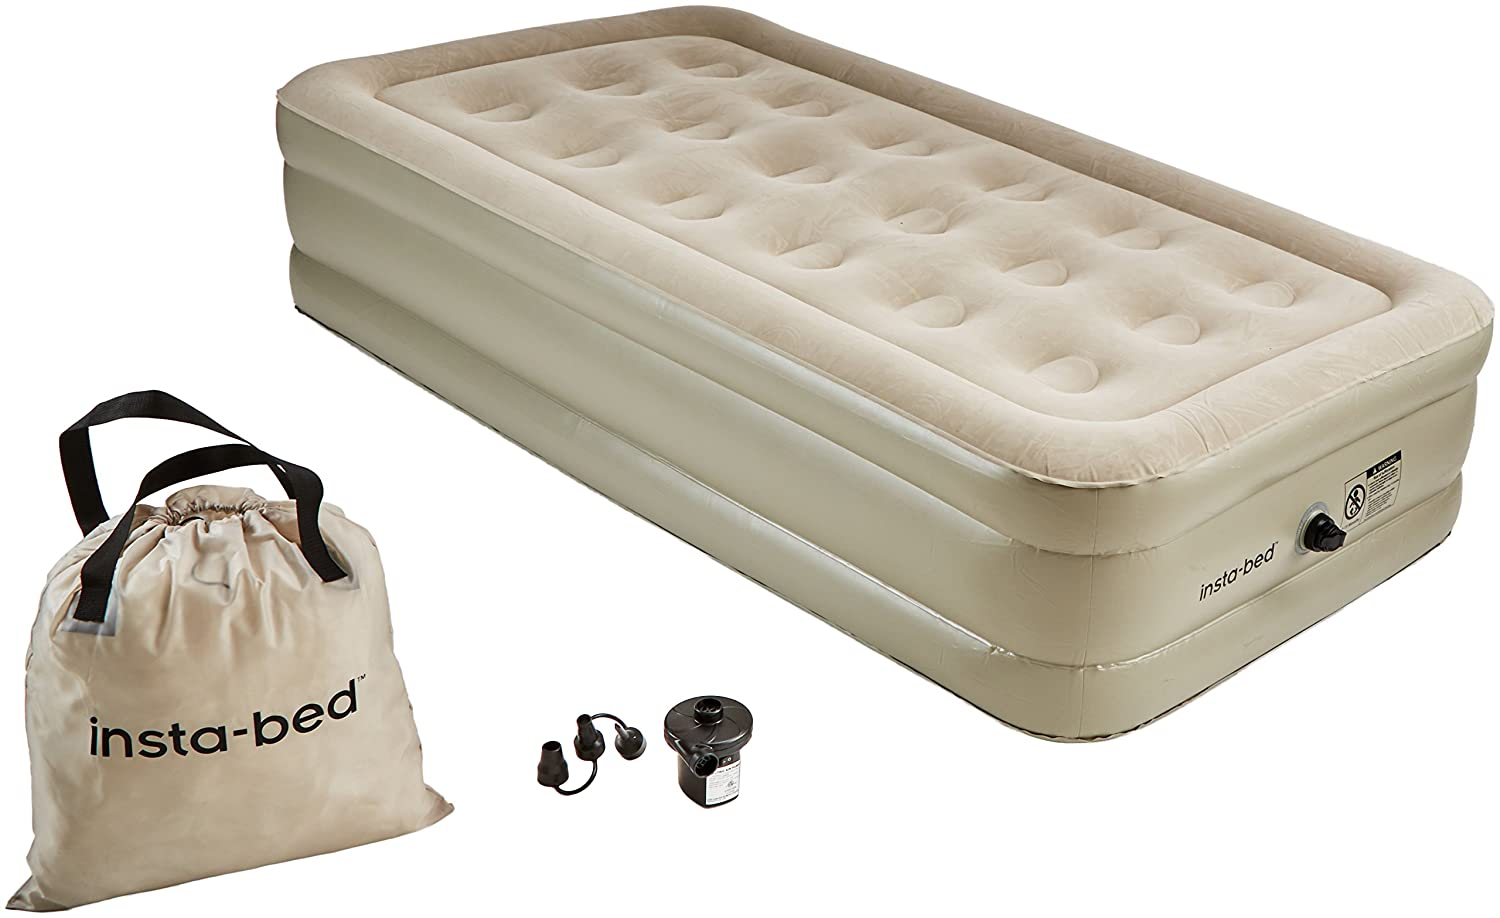 Insta-Bed 16' Air Mattress with External AC Pump, Grey